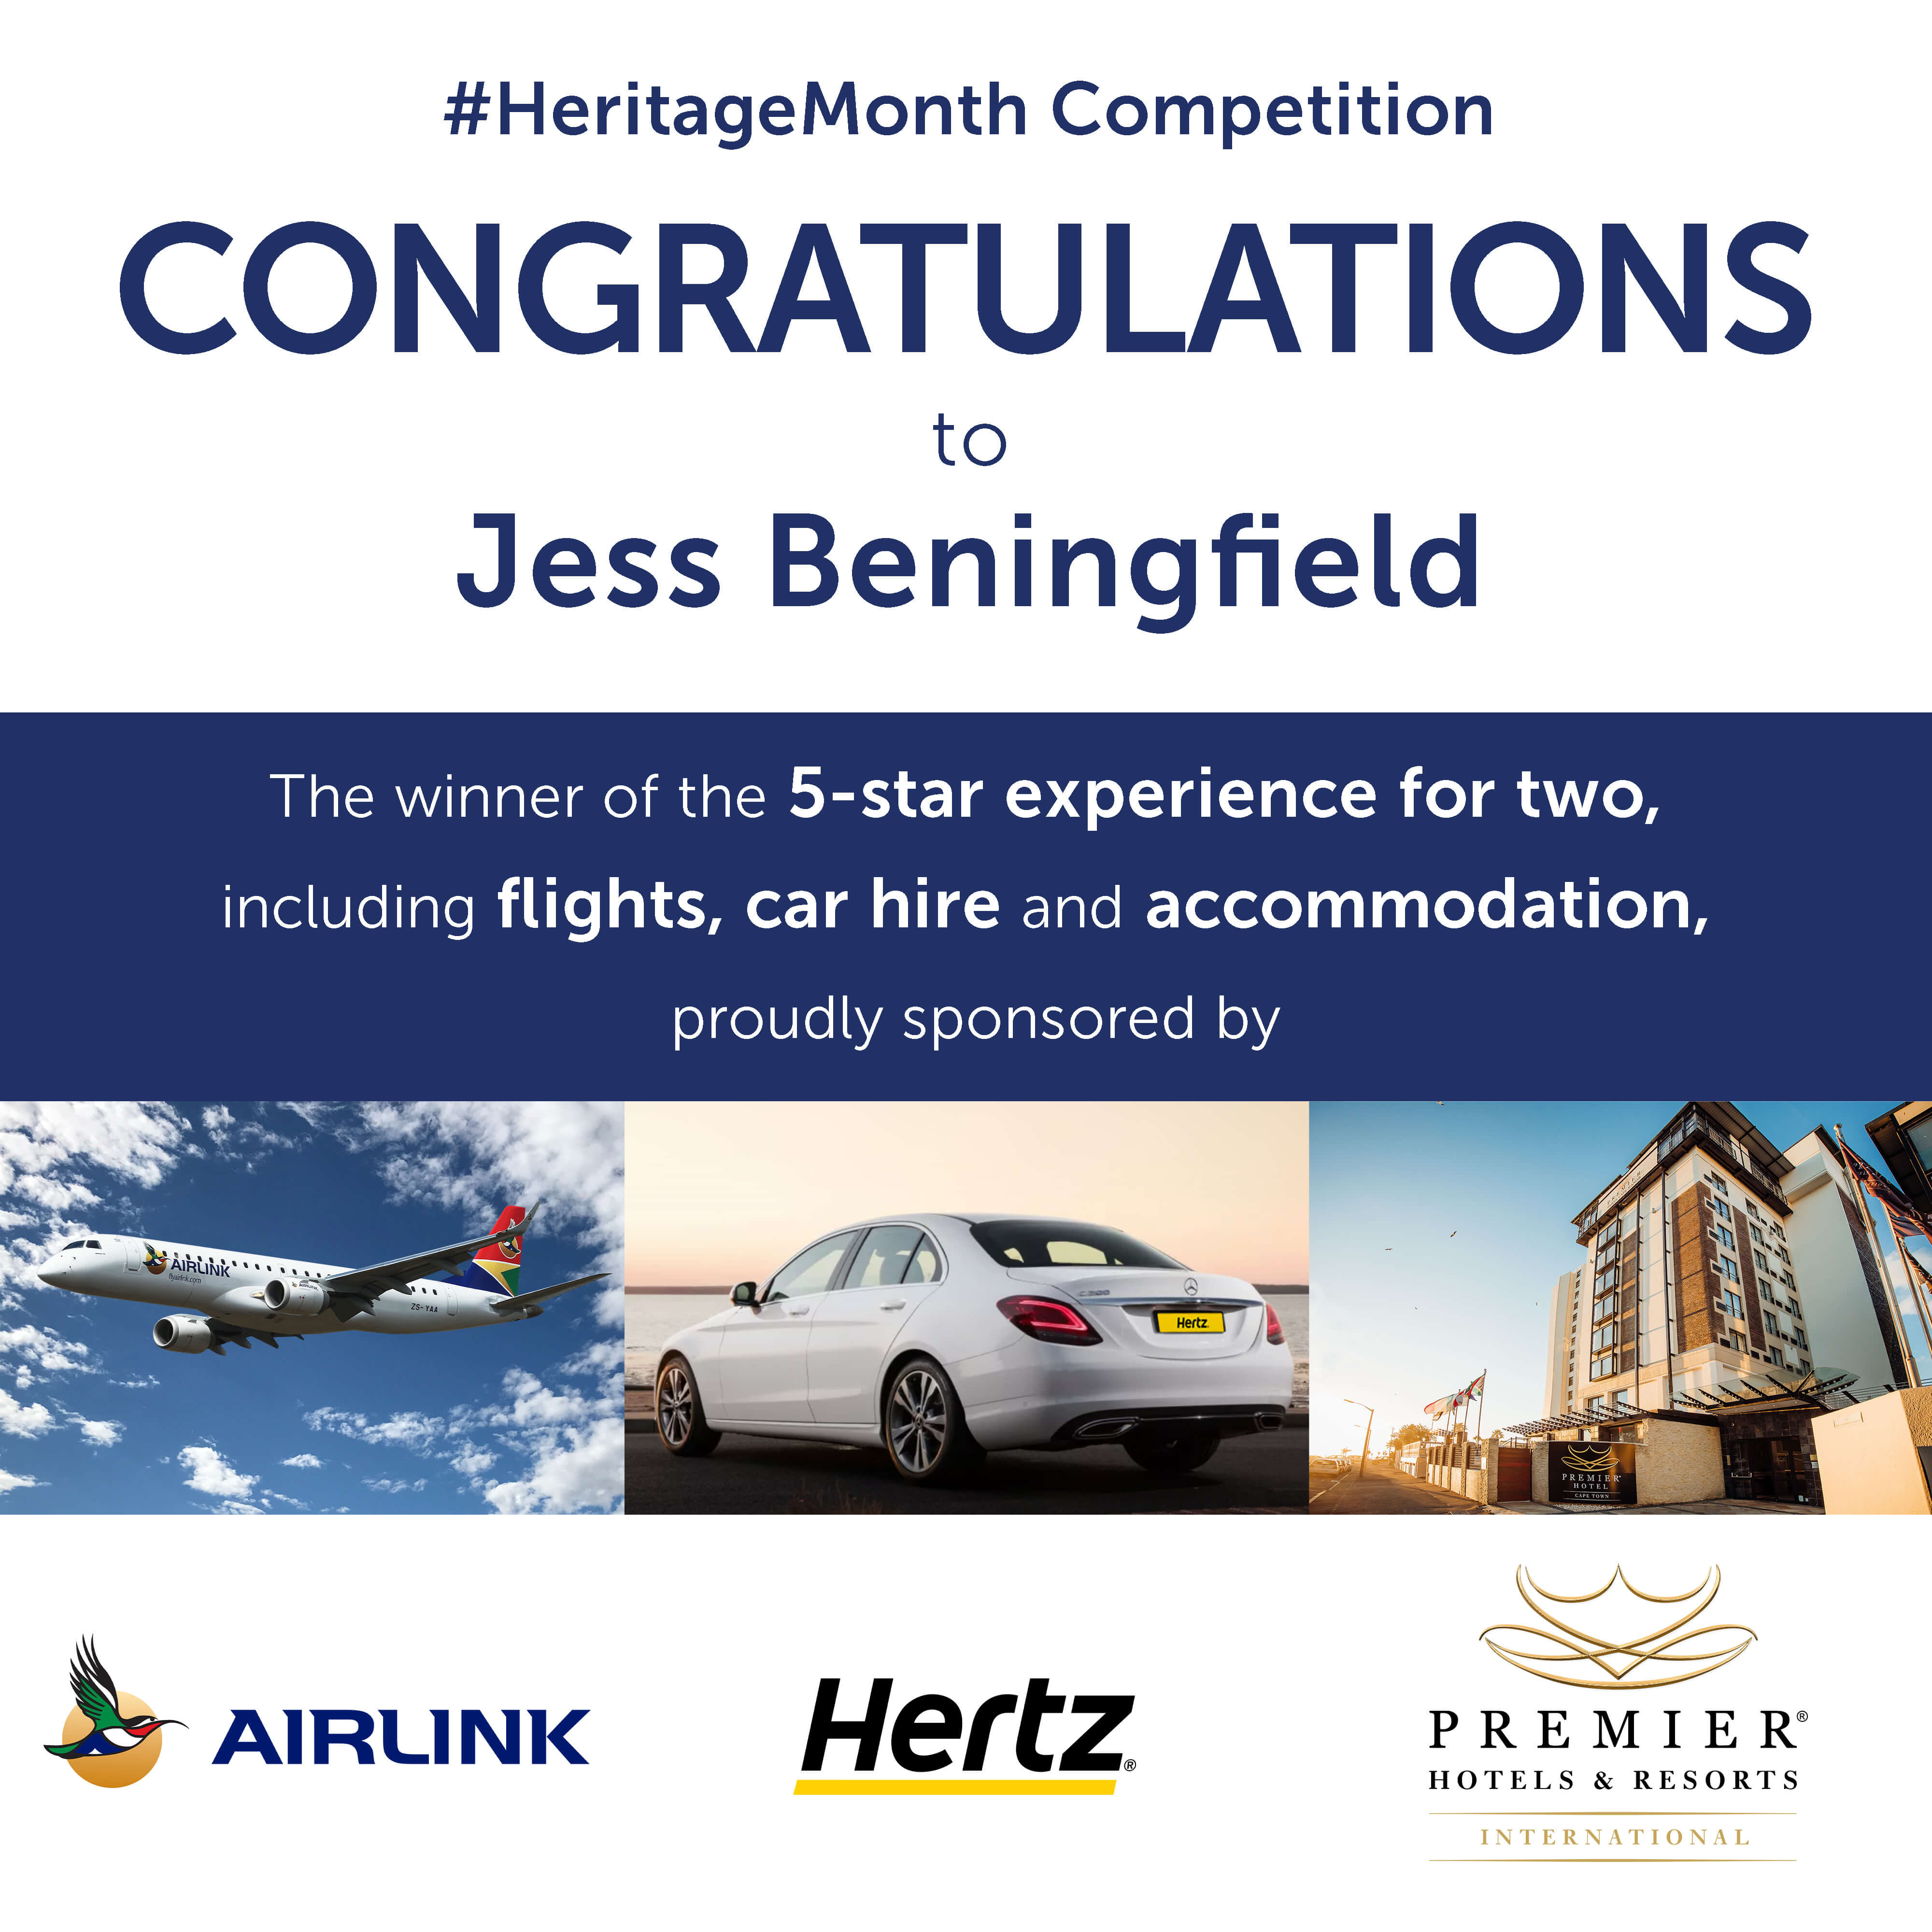 Win big this Heritage Day with Premier Hotels, Airlink and Hertz